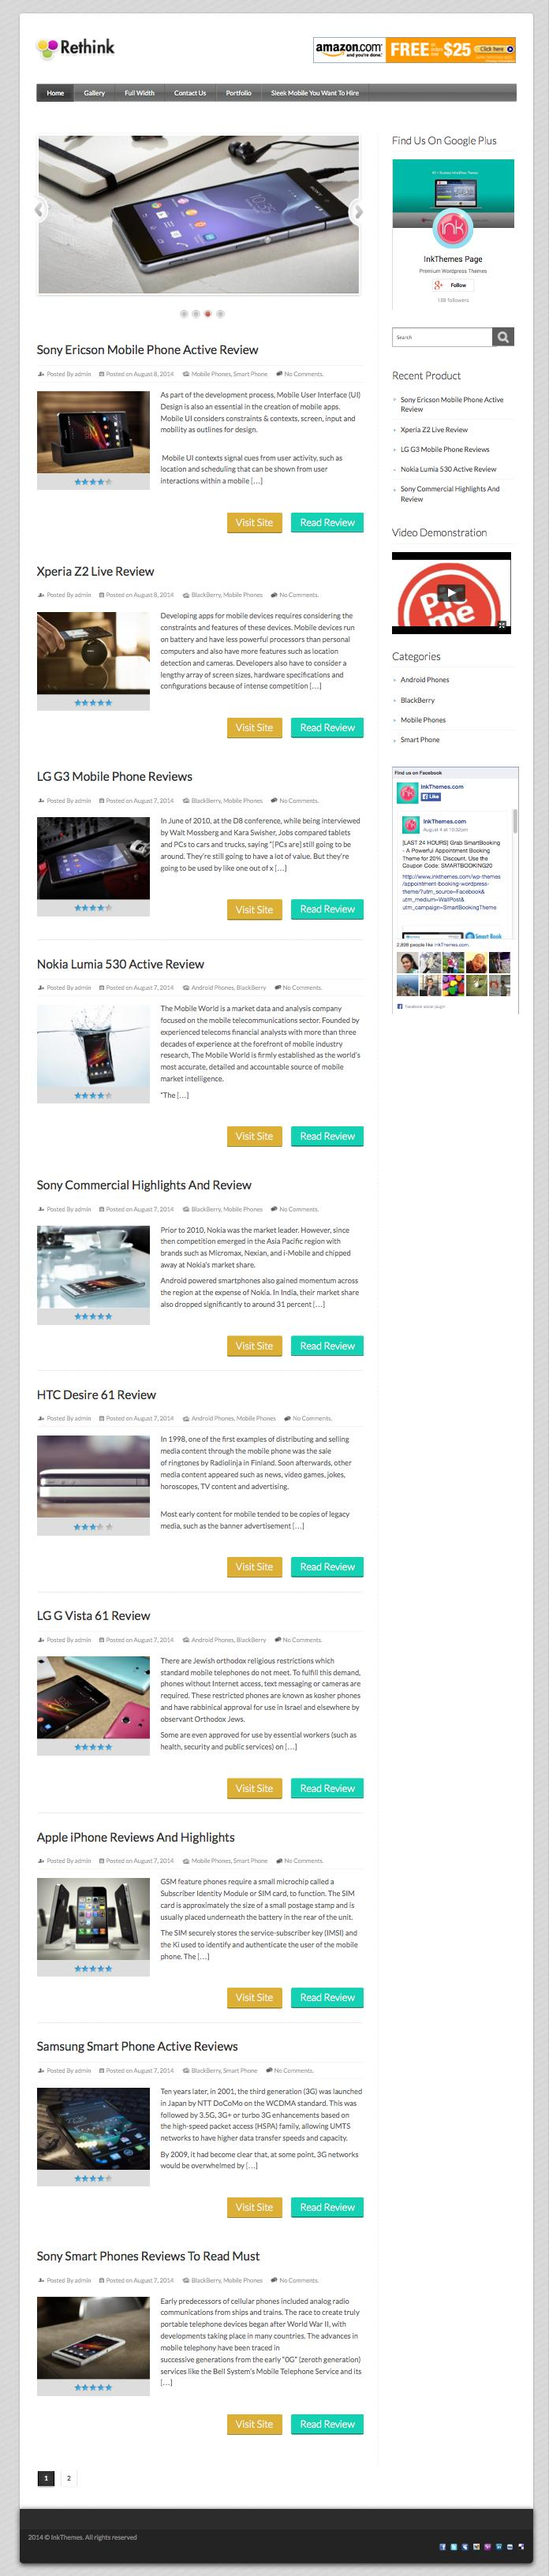 Rethink WordPress Mobile Review & Ratings Theme